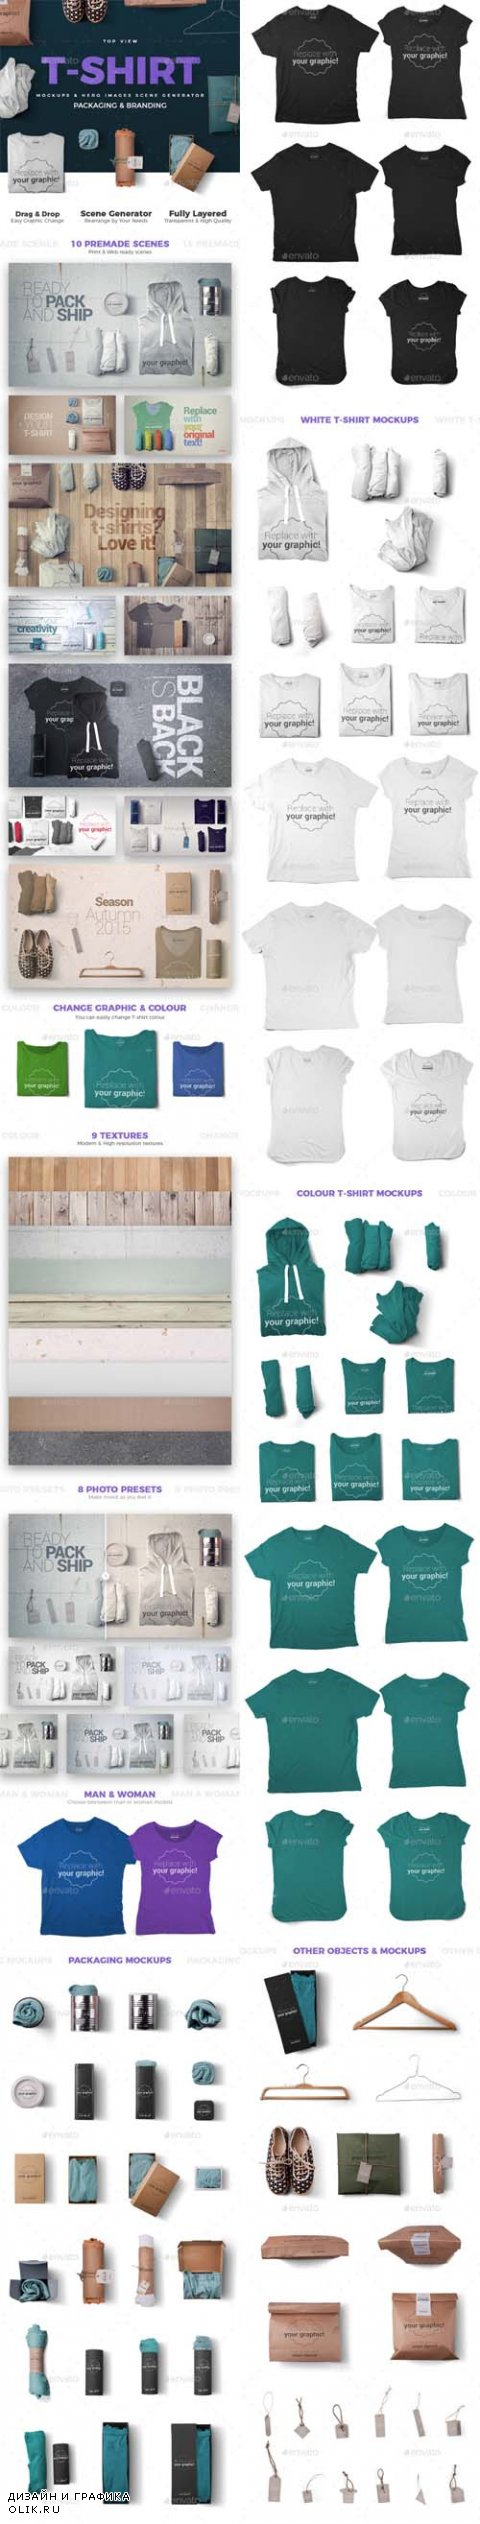 GR - T-shirt Mockups and Packages - Hero Images Scene Generator 13903877